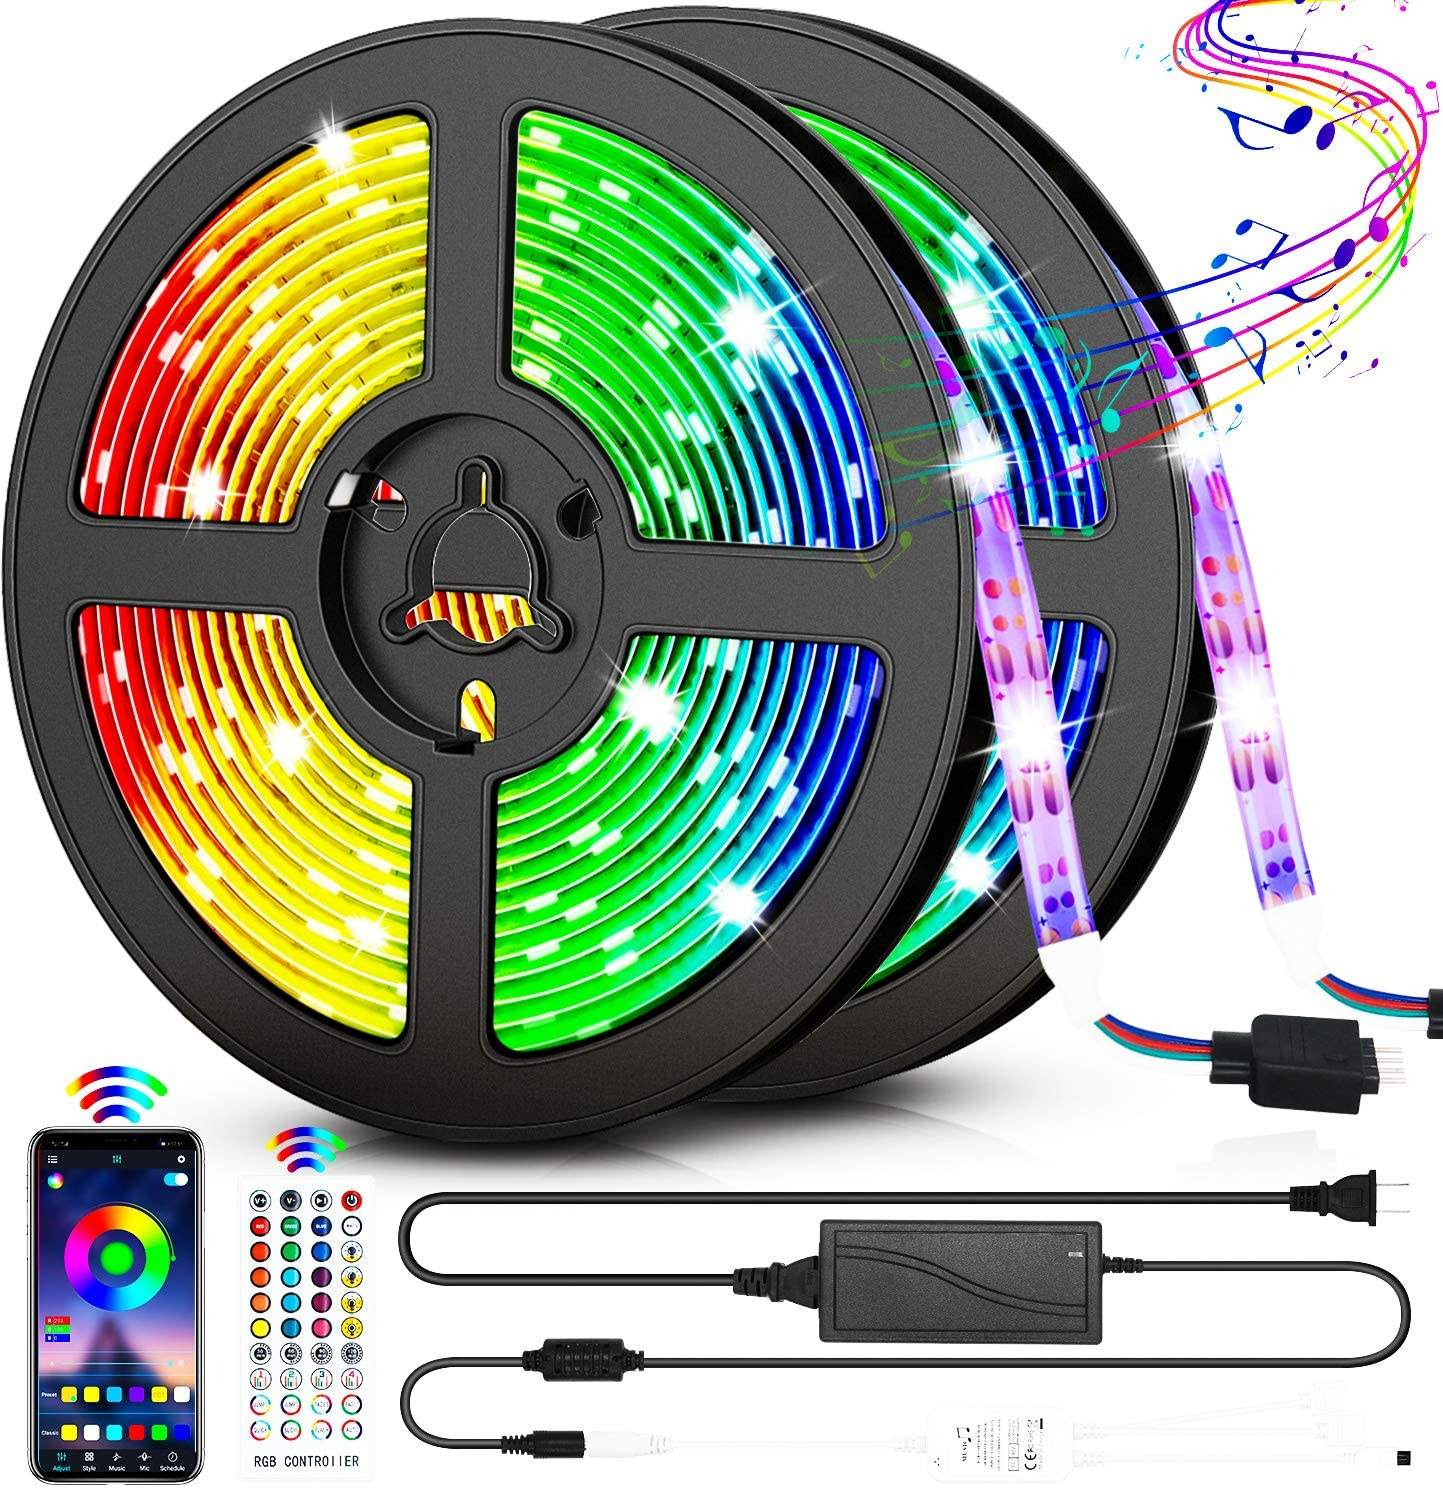 LED Strip Lights 32.8FT/10M 300 LEDs Waterproof RGB Light Strip Kits with Remote for Room Bedroom TV Kitchen Desk